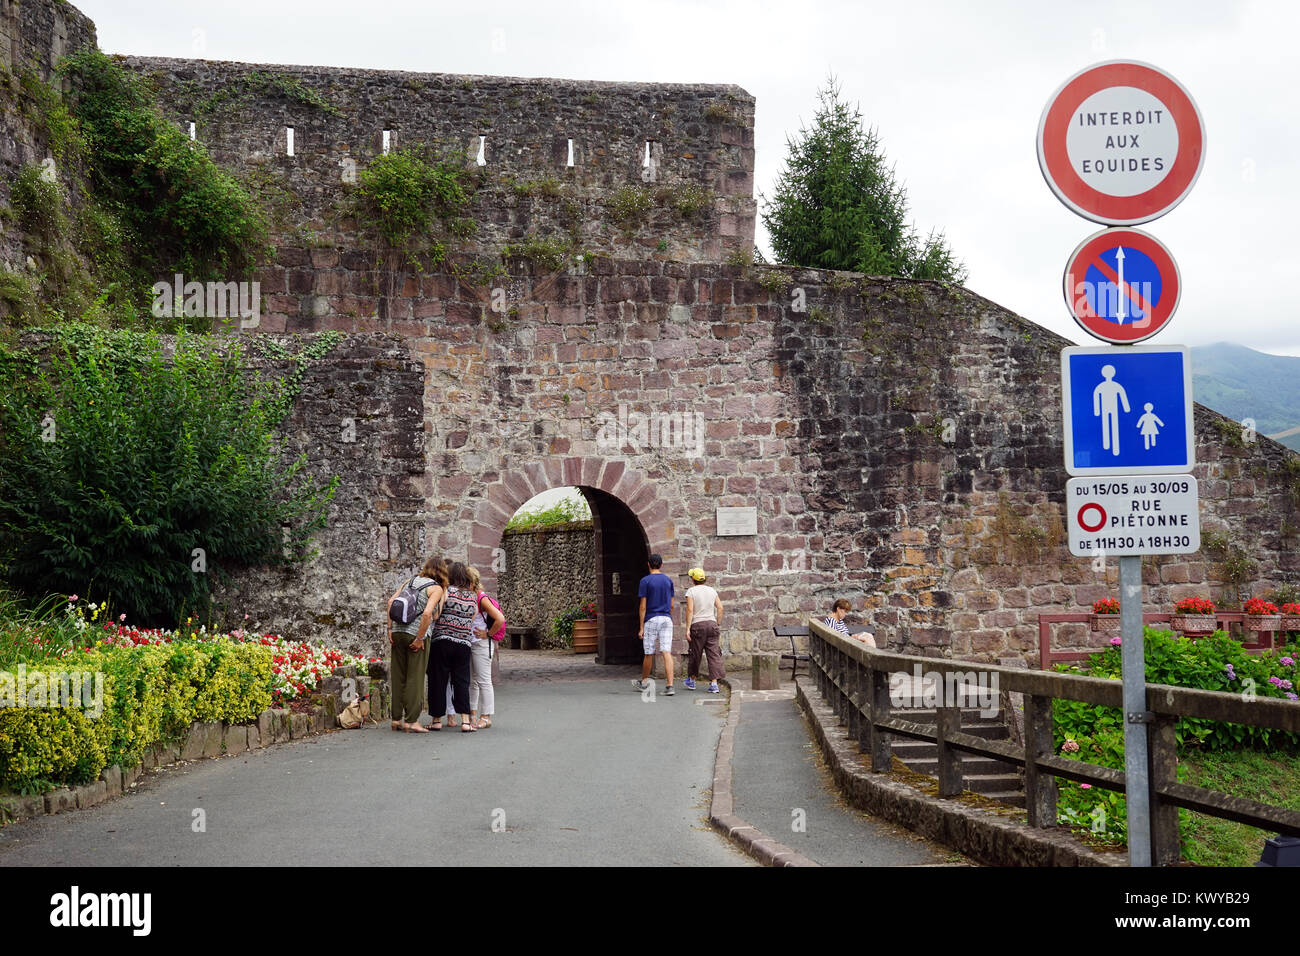 ST JEAN PIED DE PORT, FRANCE - CIRCA JULY 2015 Entrance of OLd town Stock Photo